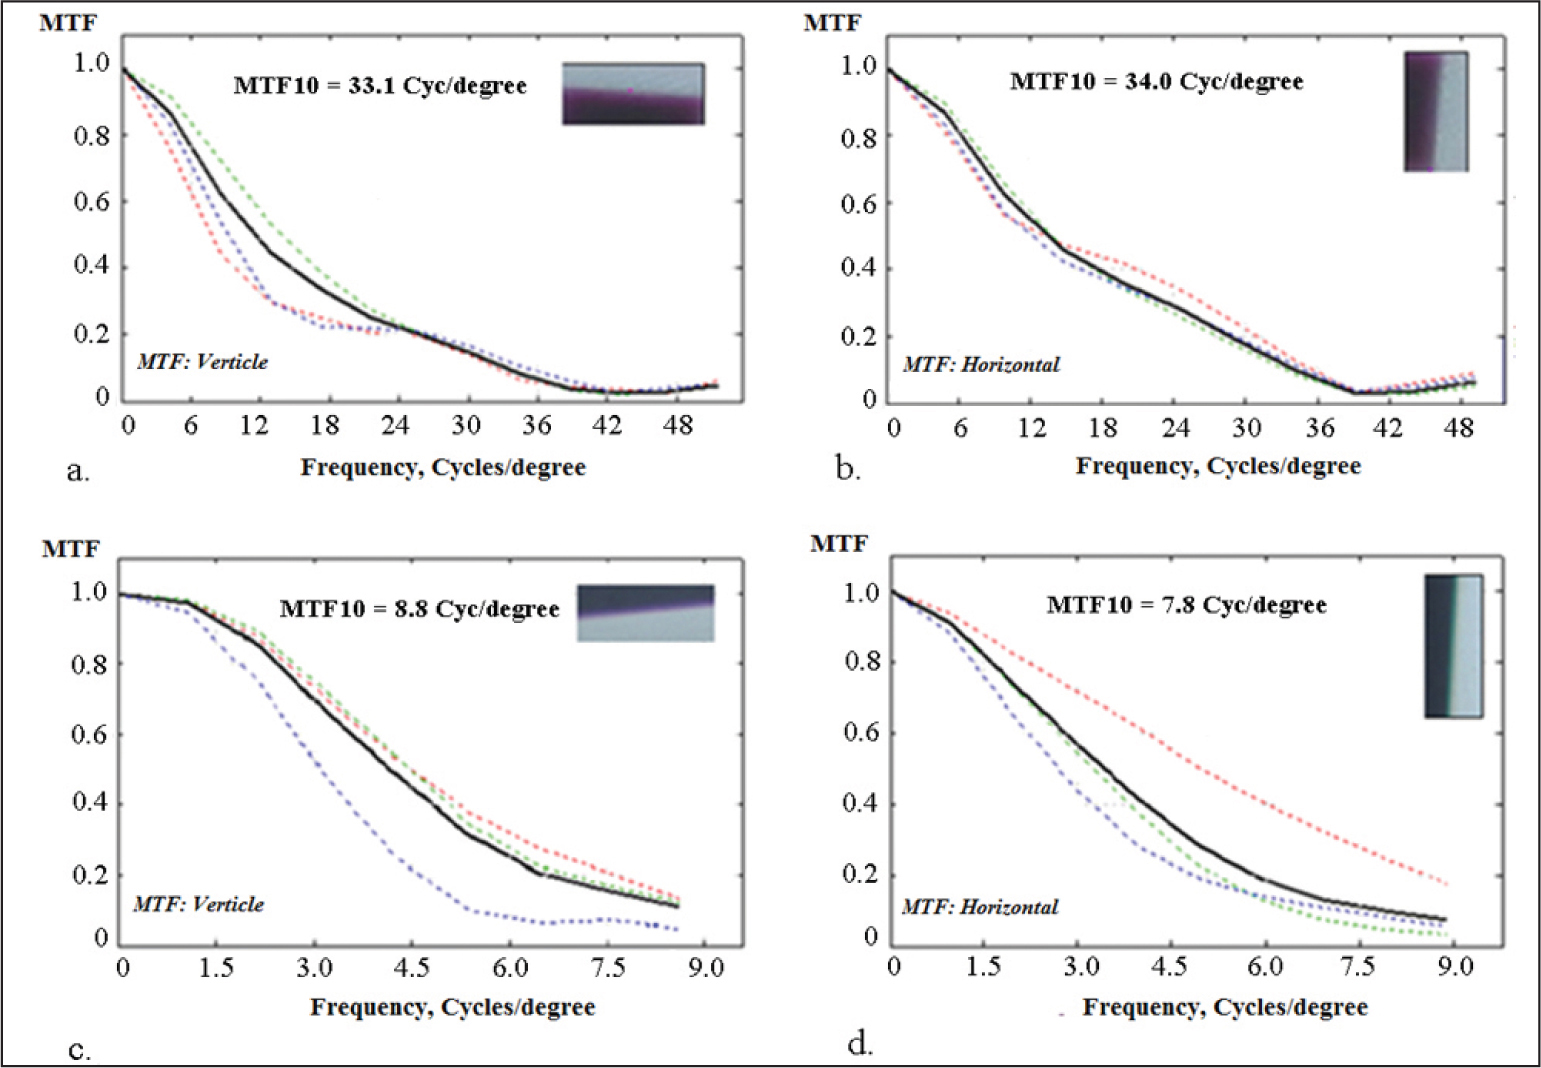 (A and B) On-axis polychromatic modulation transfer function (MTF) measured from the optomechanical eye model using a slanted edge chart. (C and D) Ten degrees off-axis MTF measured from the eye model using the slanted edge chart. Images are illumined with fluorescent lighting. The images of the slanted edge chart are shown in the insets.